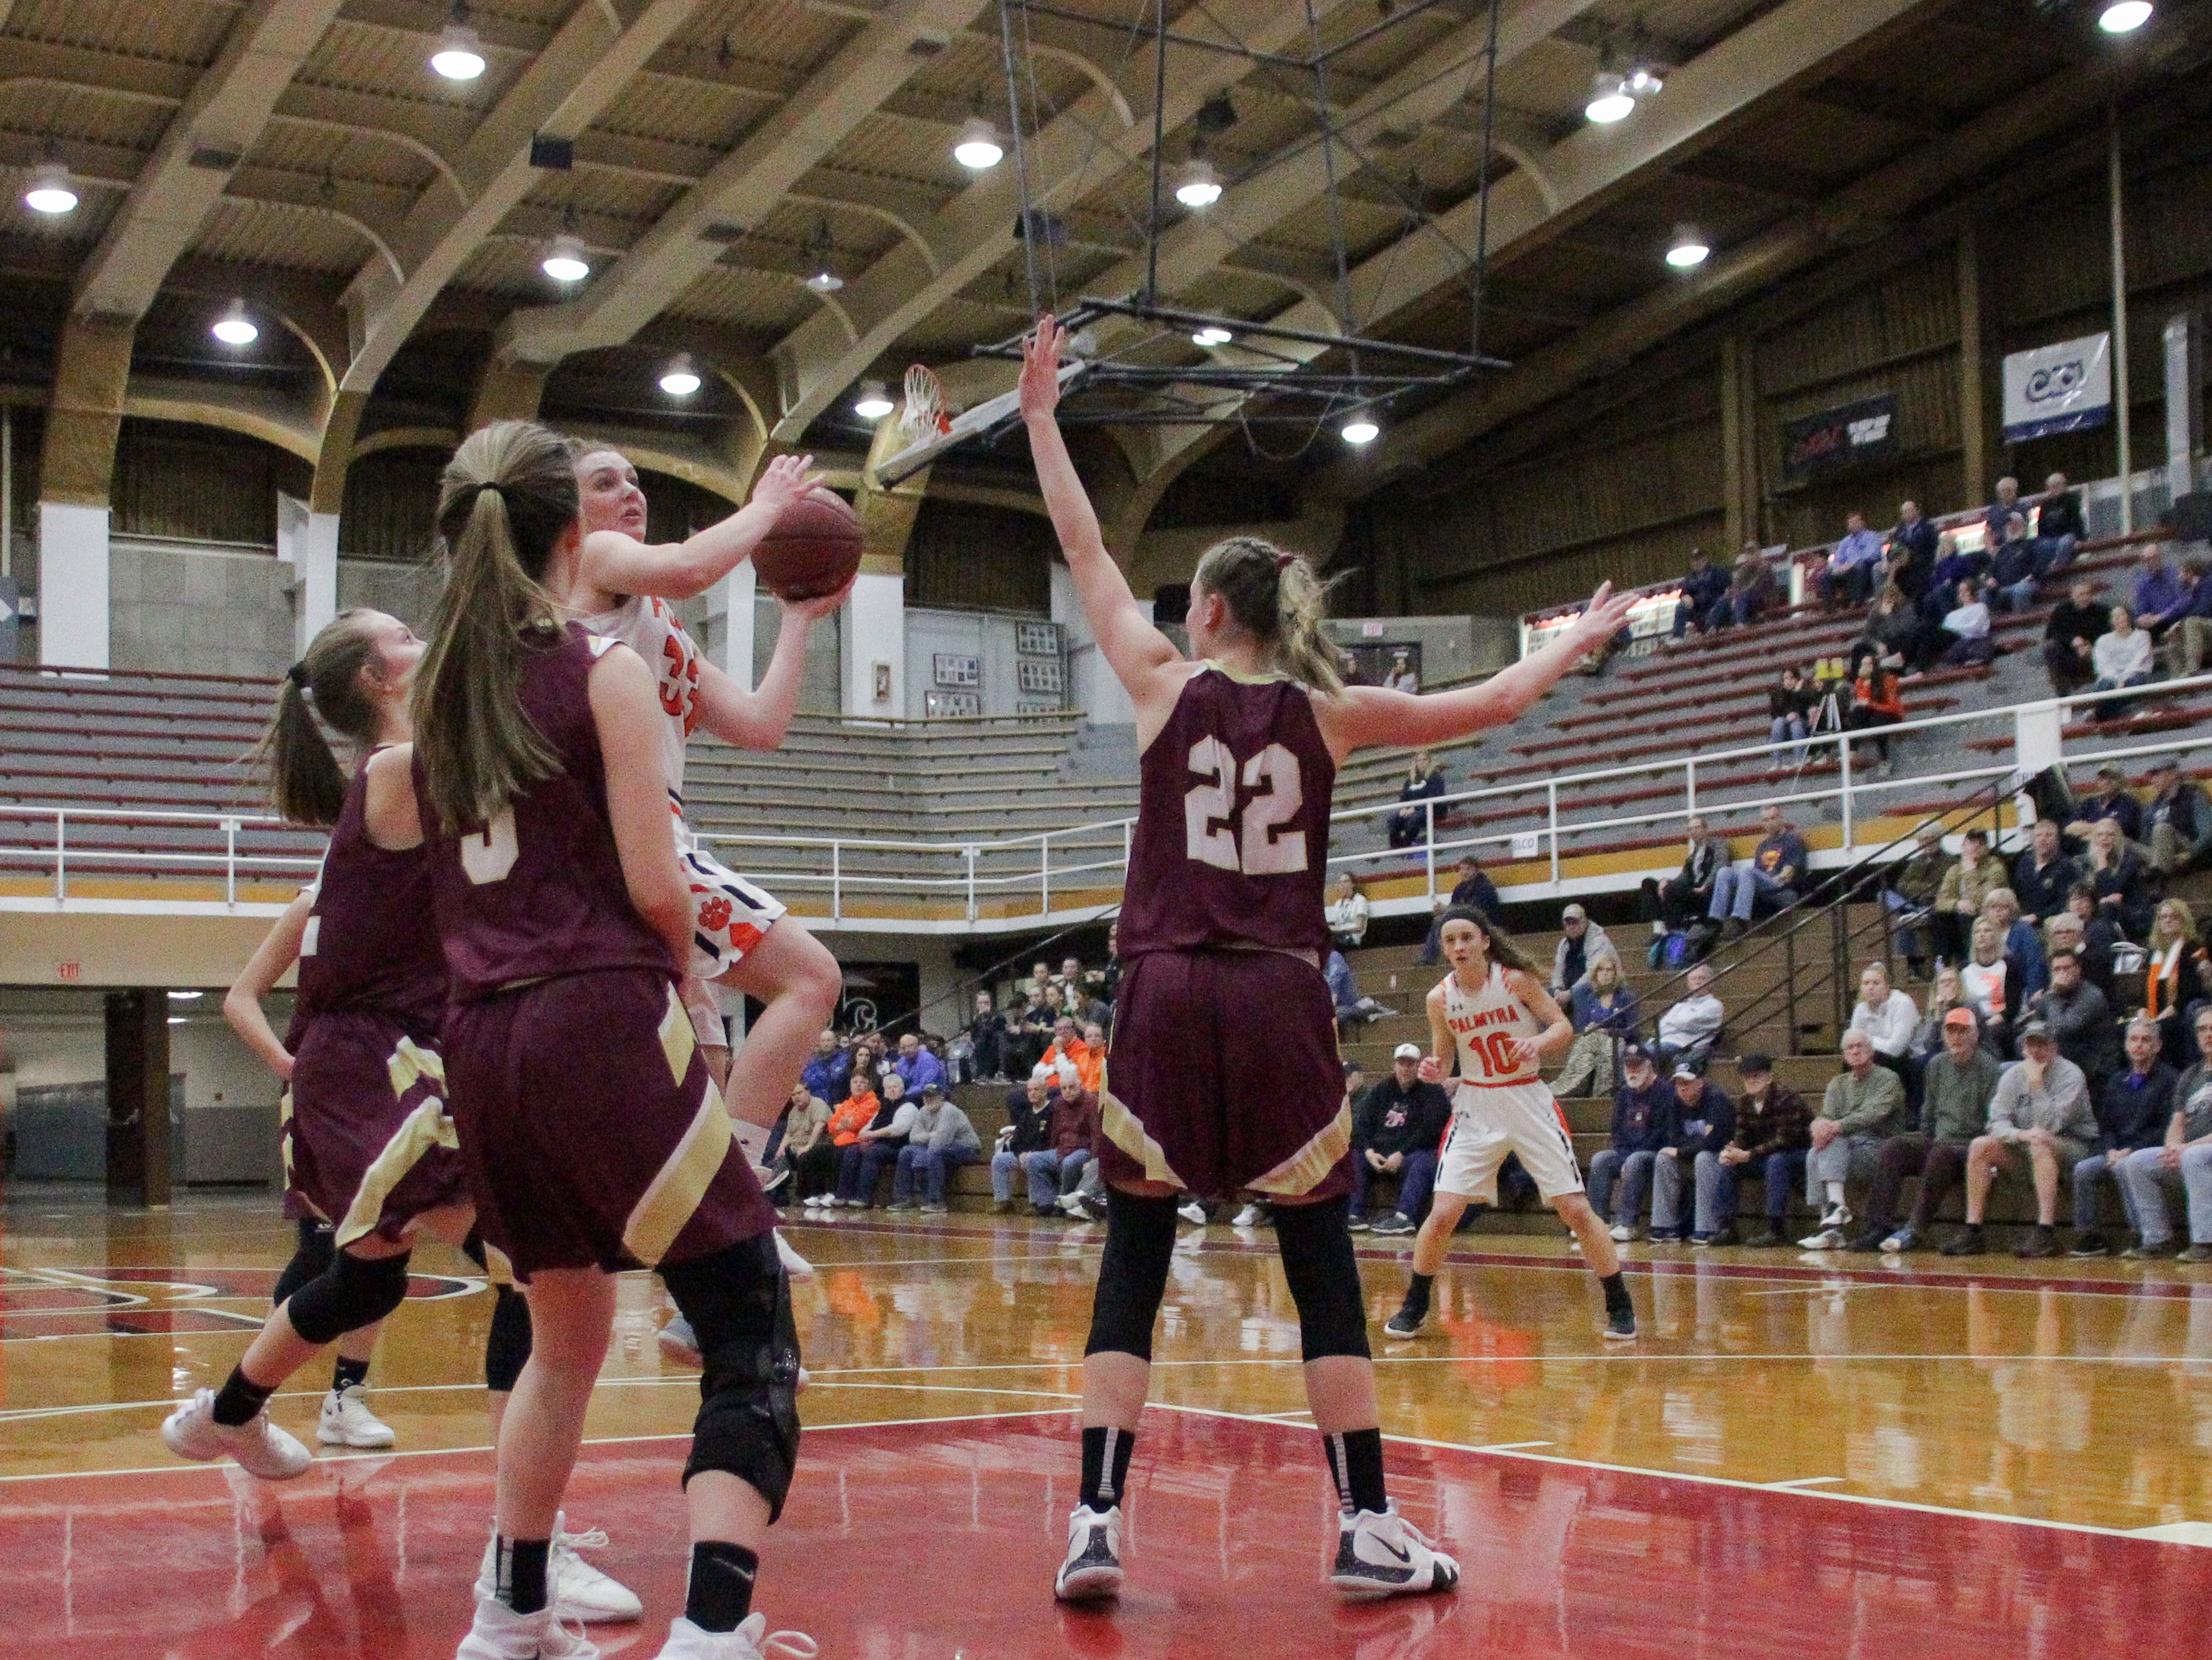 Palmyra advanced to the state quarterfinals with a 42-24 victory against Wyoming Valley West in the second round of the PIAA Class 5A tournament Wednesday, March 13, 2019.